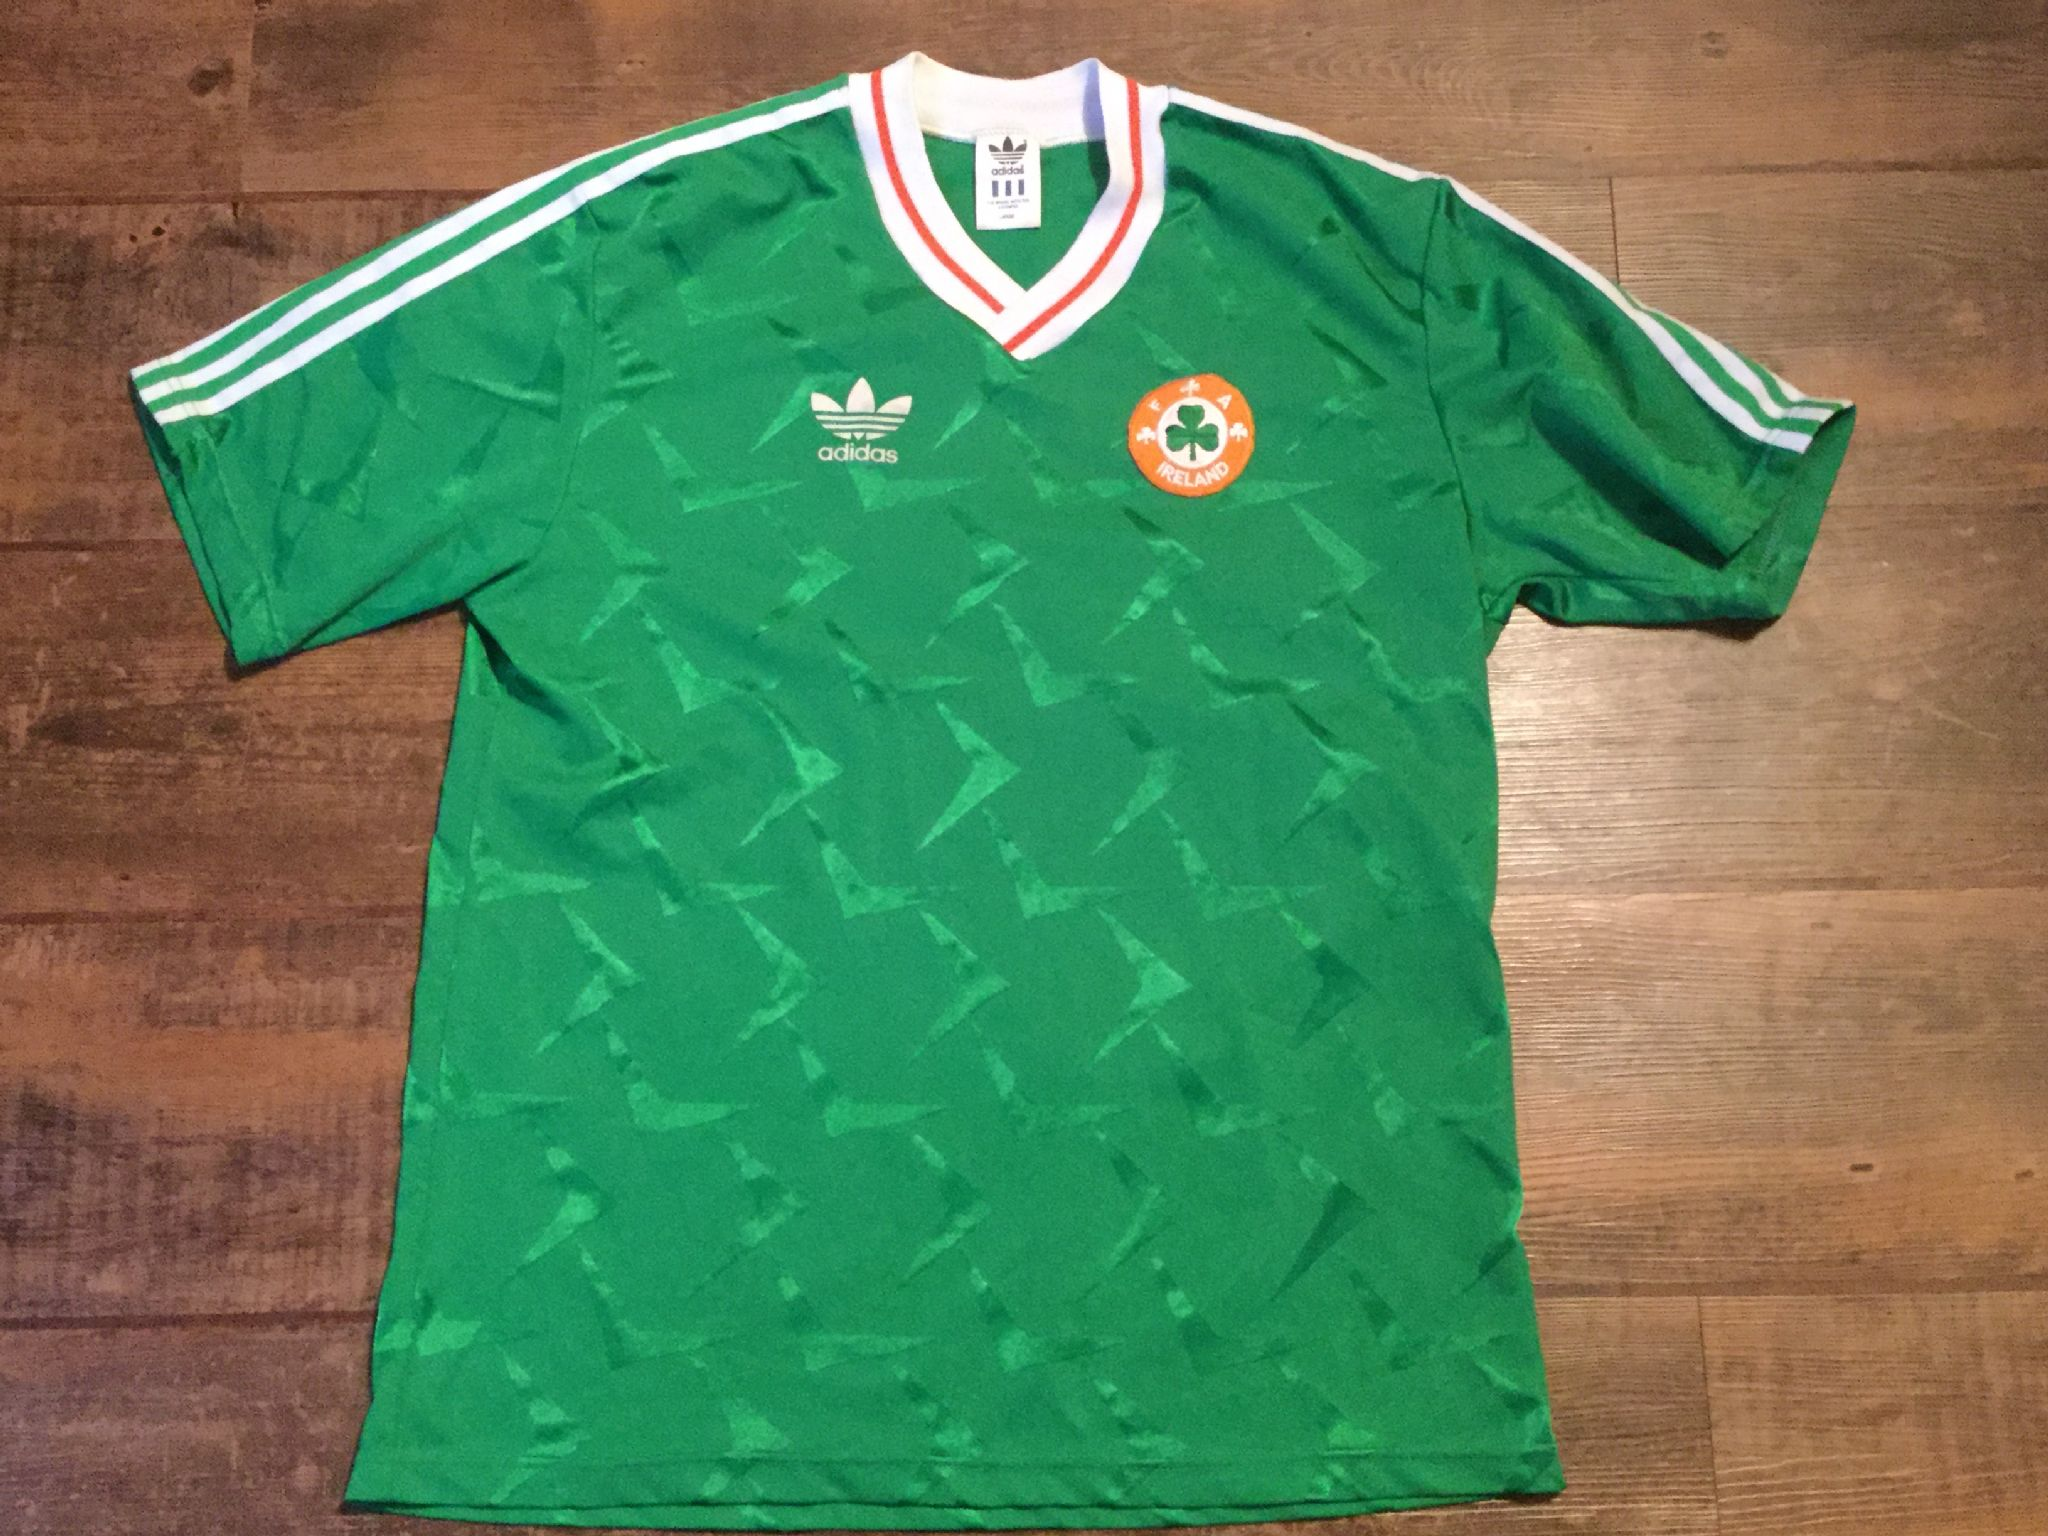 Global Classic Football Shirts 1990 1992 Republic Of